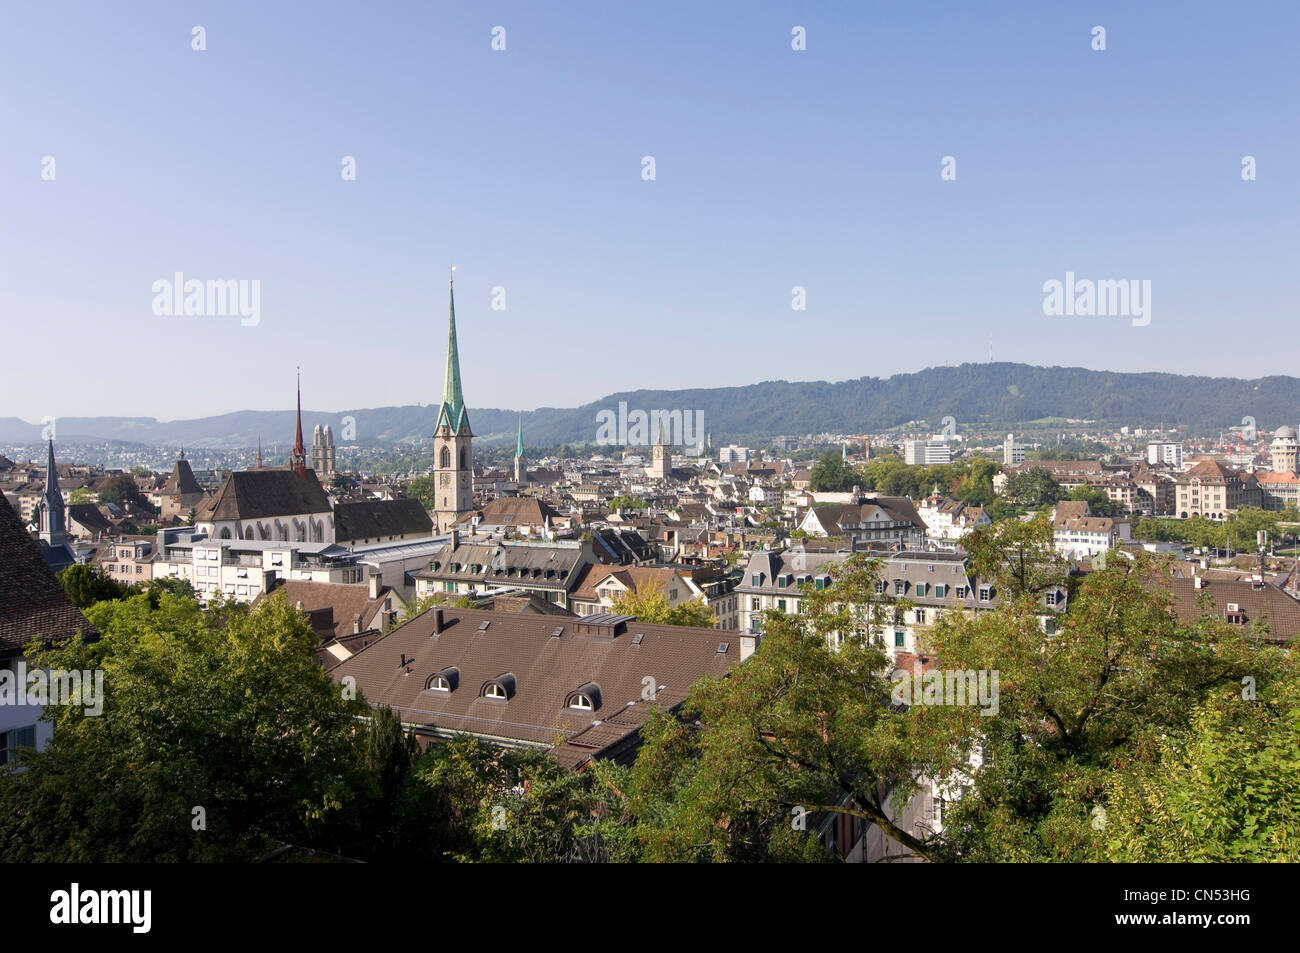 Horizontal wide angle over Zürich's skyline with Predigerkirche, Fraumünster kirche, St Peter kirche - Stock Image